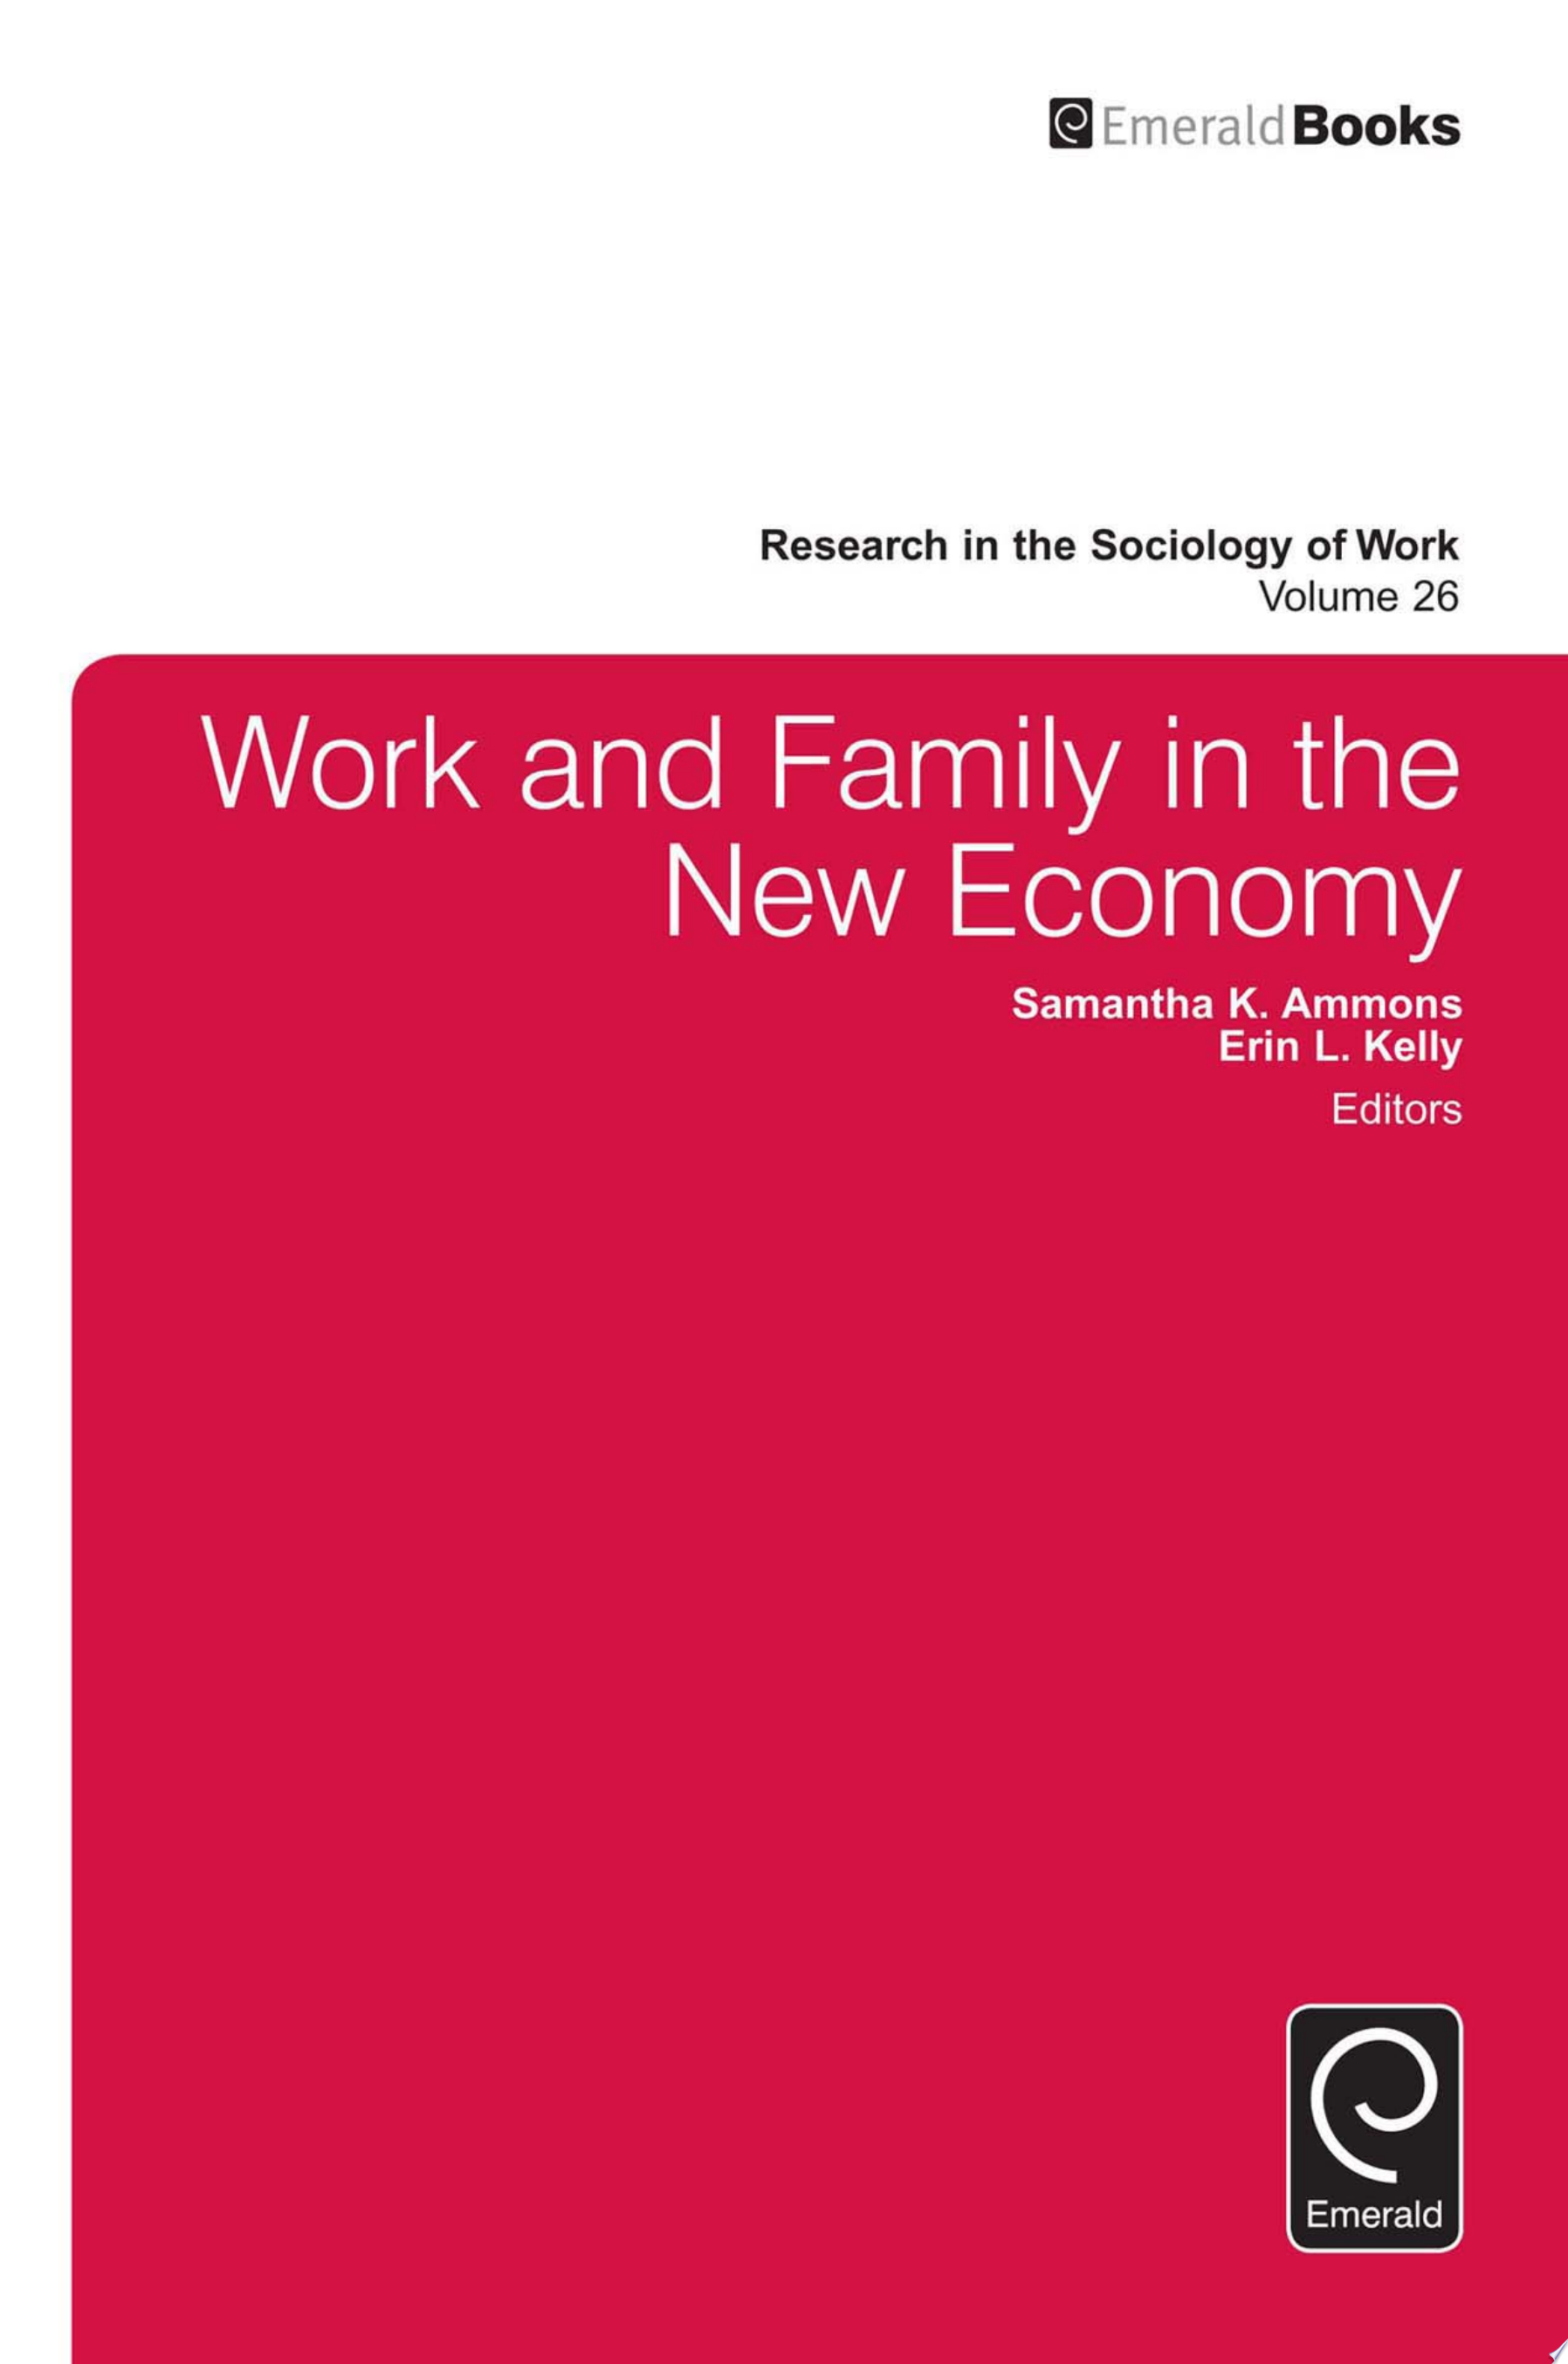 Work and Family in the New Economy